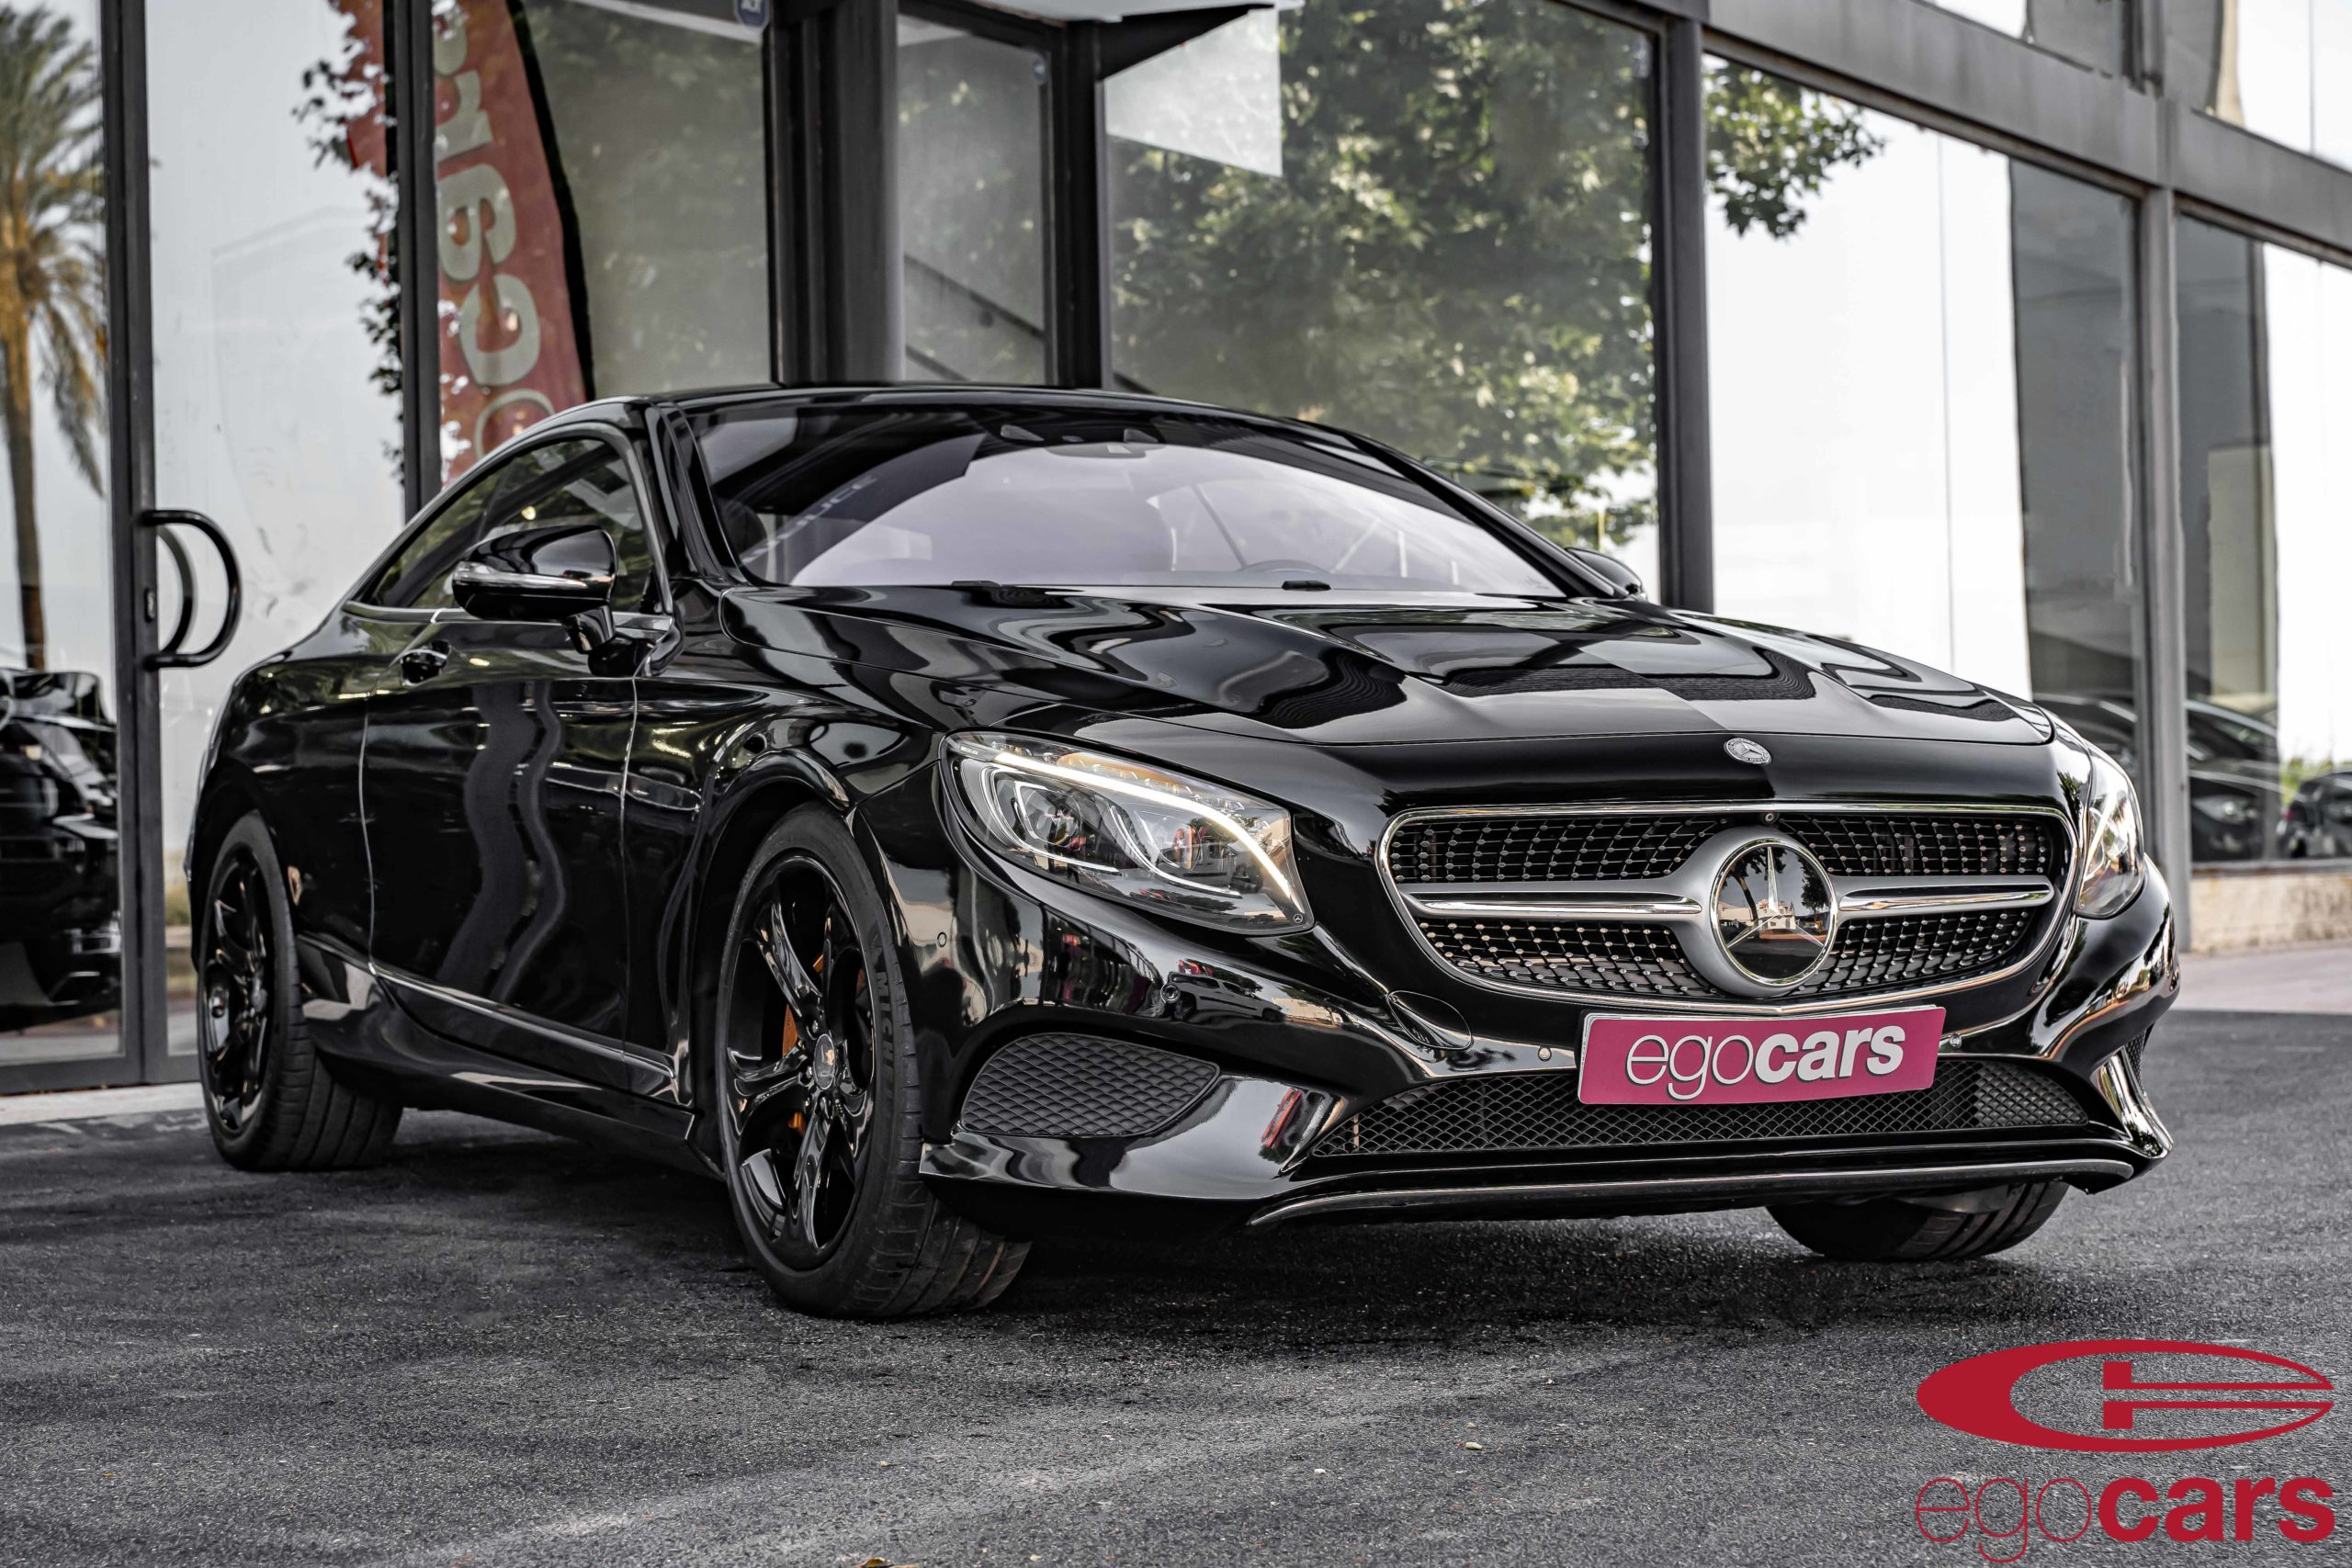 S500 COUPE 4MATIC NEGRO EGOCARS_4